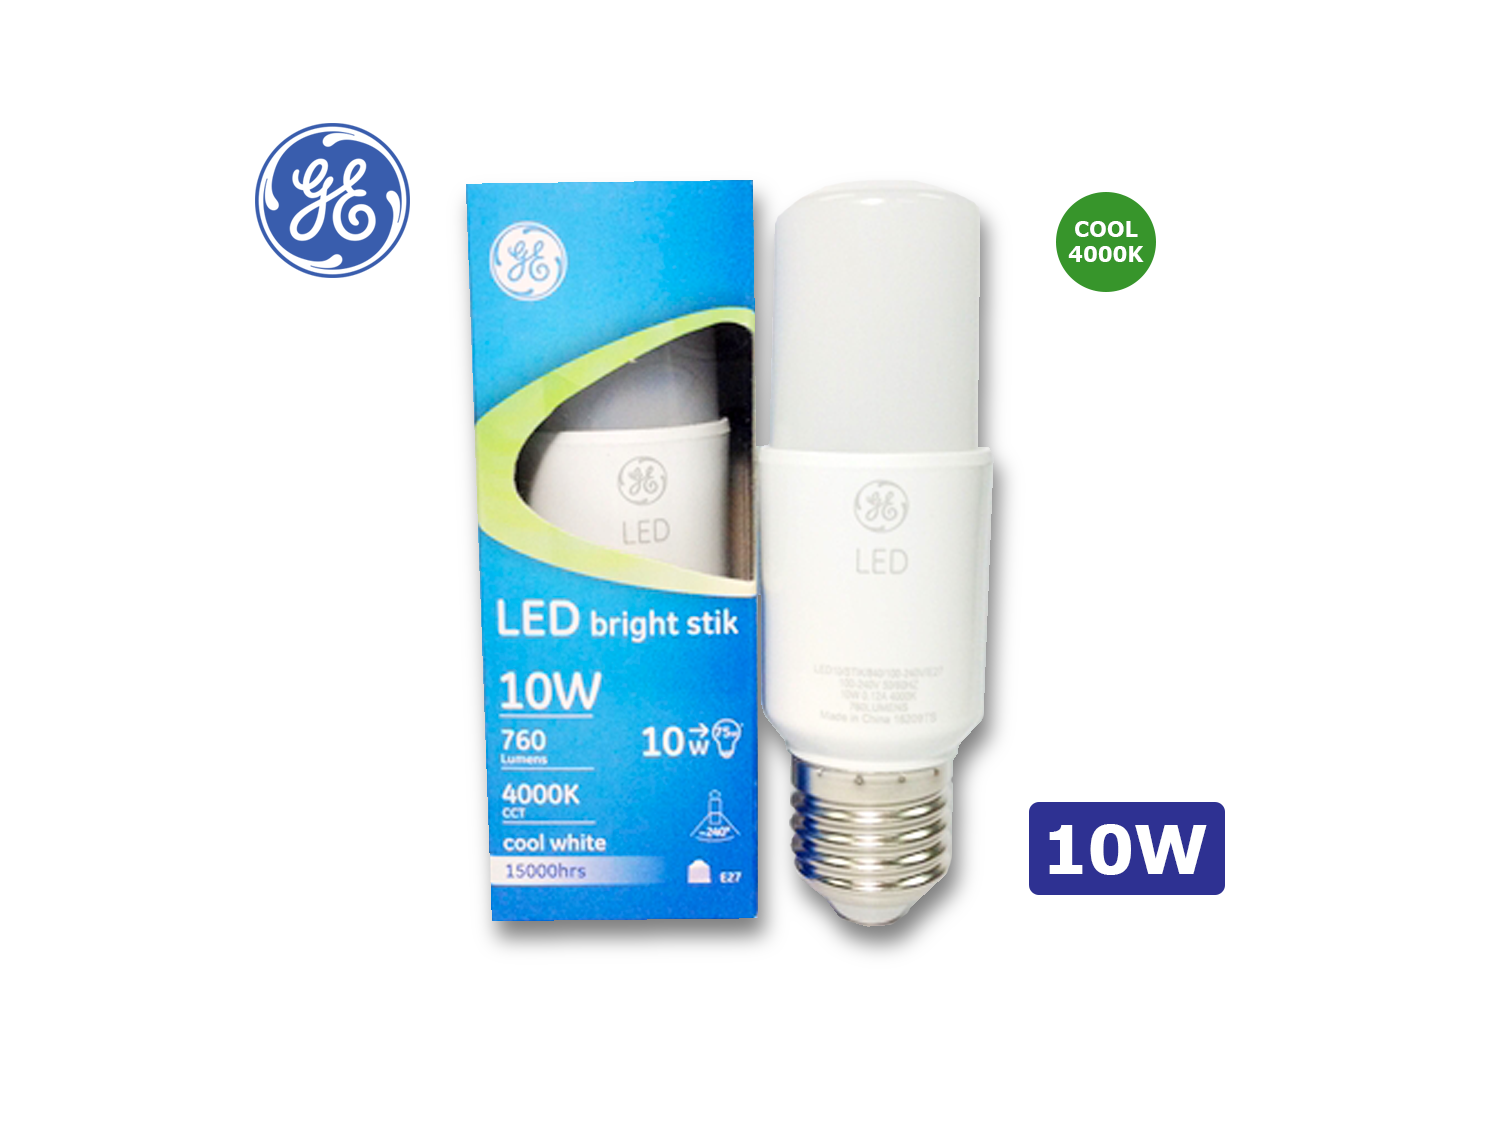 GE 10W/LED Brightstik E27/4000K(Cool White)/100-240V ; SKU: 35833T, LED10/STIK/840/100-240V/E27